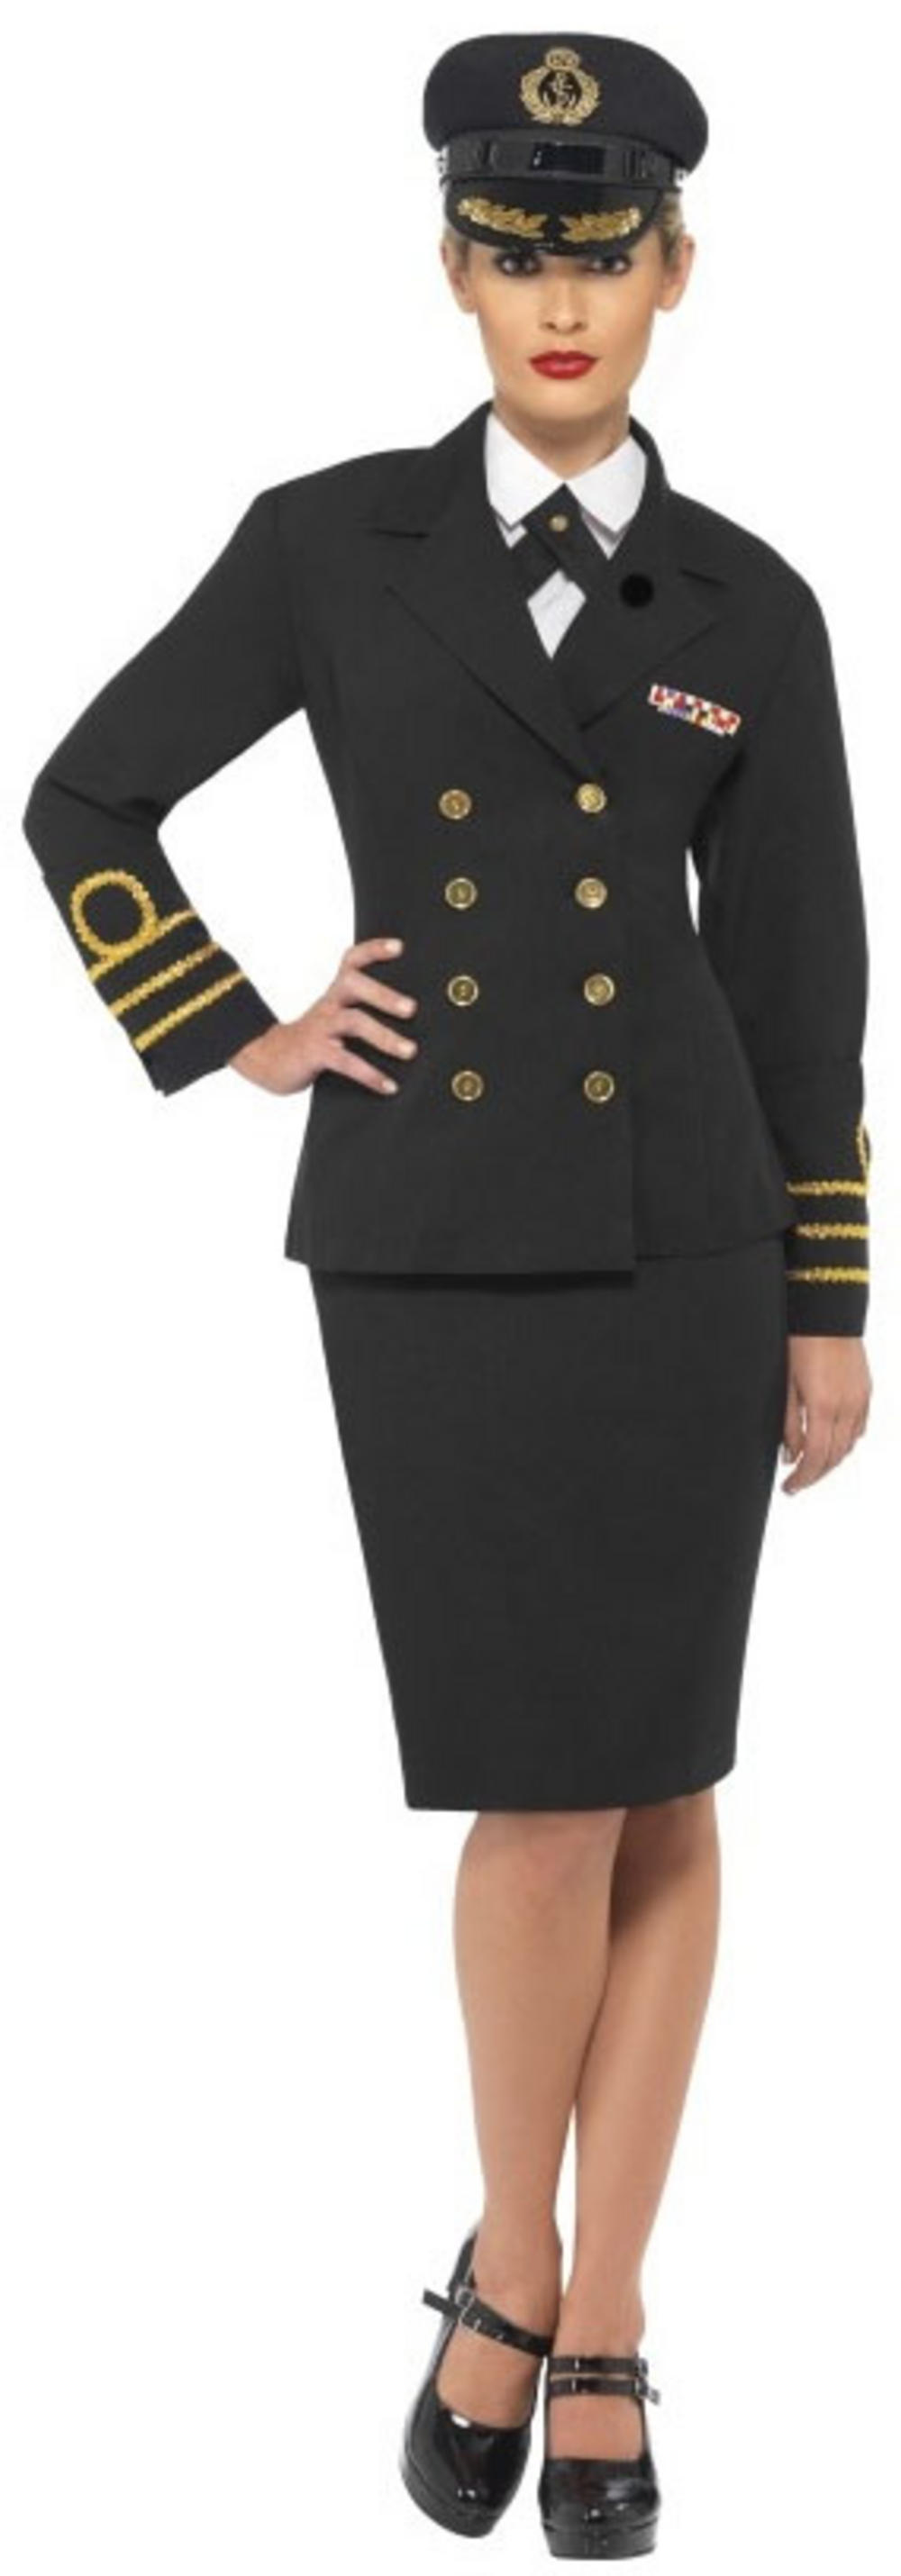 Elegant The Navy Has Made Several Changes To Womens Uniforms That Went Into Effect Last Wednesday  Women Are Also Now Authorized To Wear White Pearl Or White Synthetic Pearl Earrings With Dress Uniforms And Round Cut White Diamonds Or